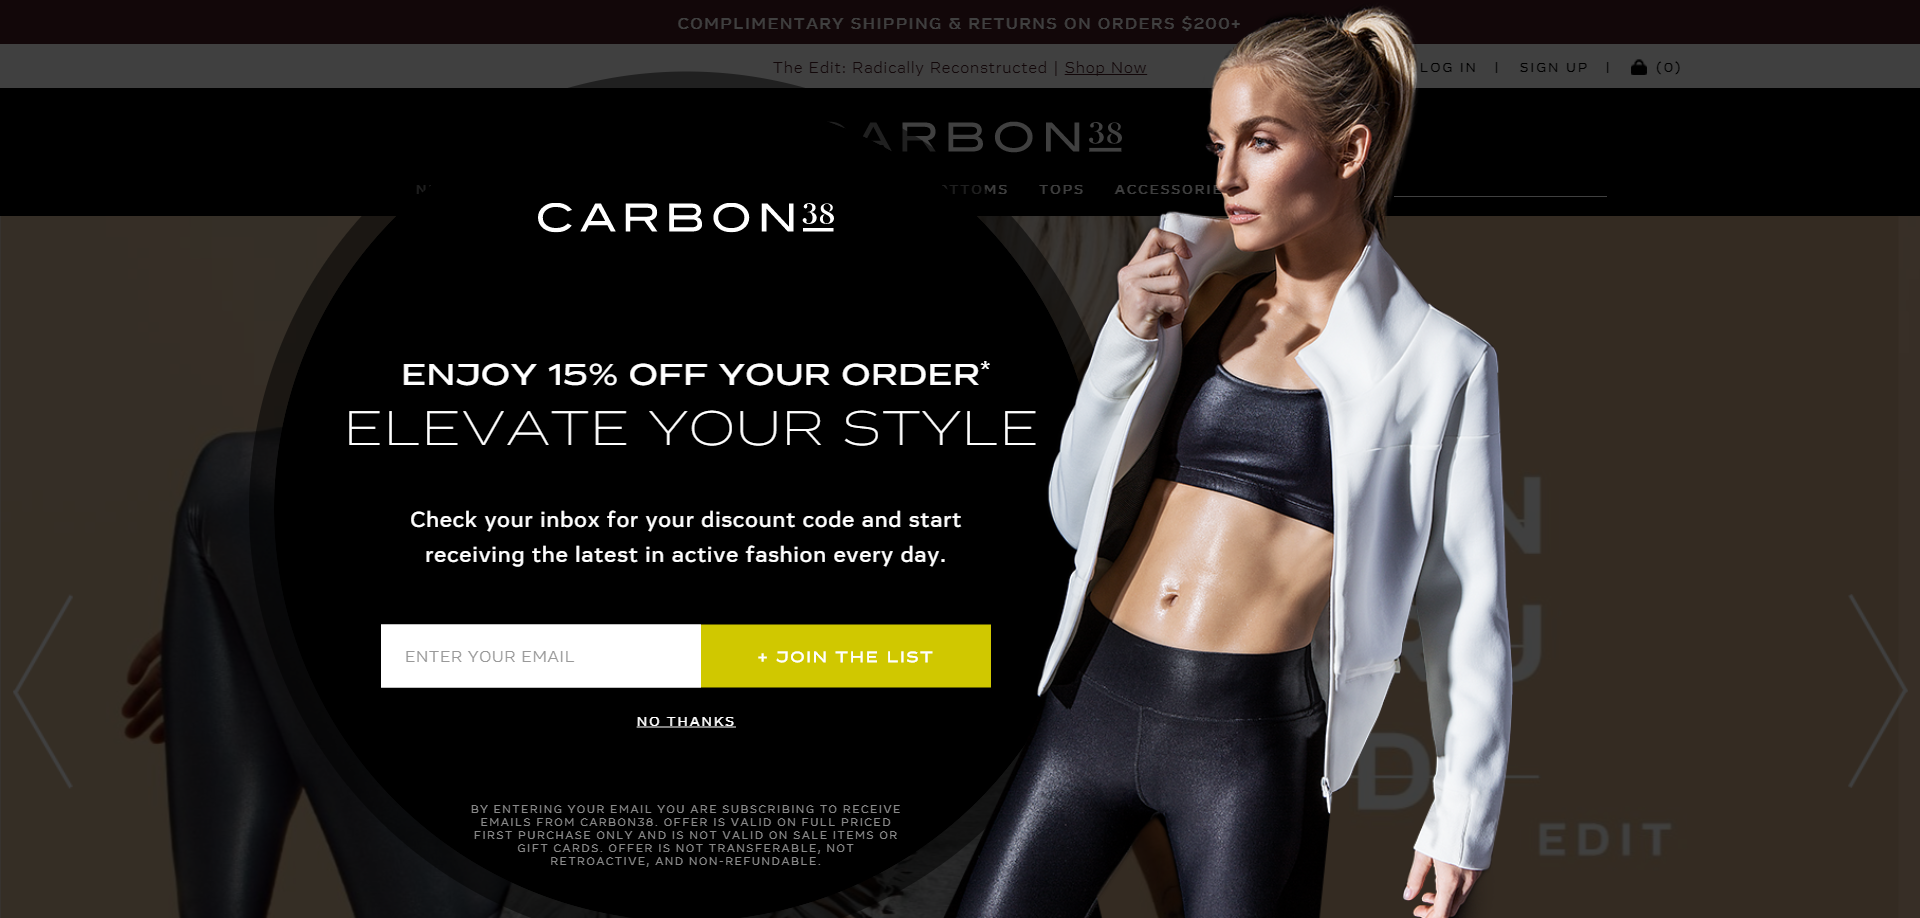 Carbon38's lightbox pop-up